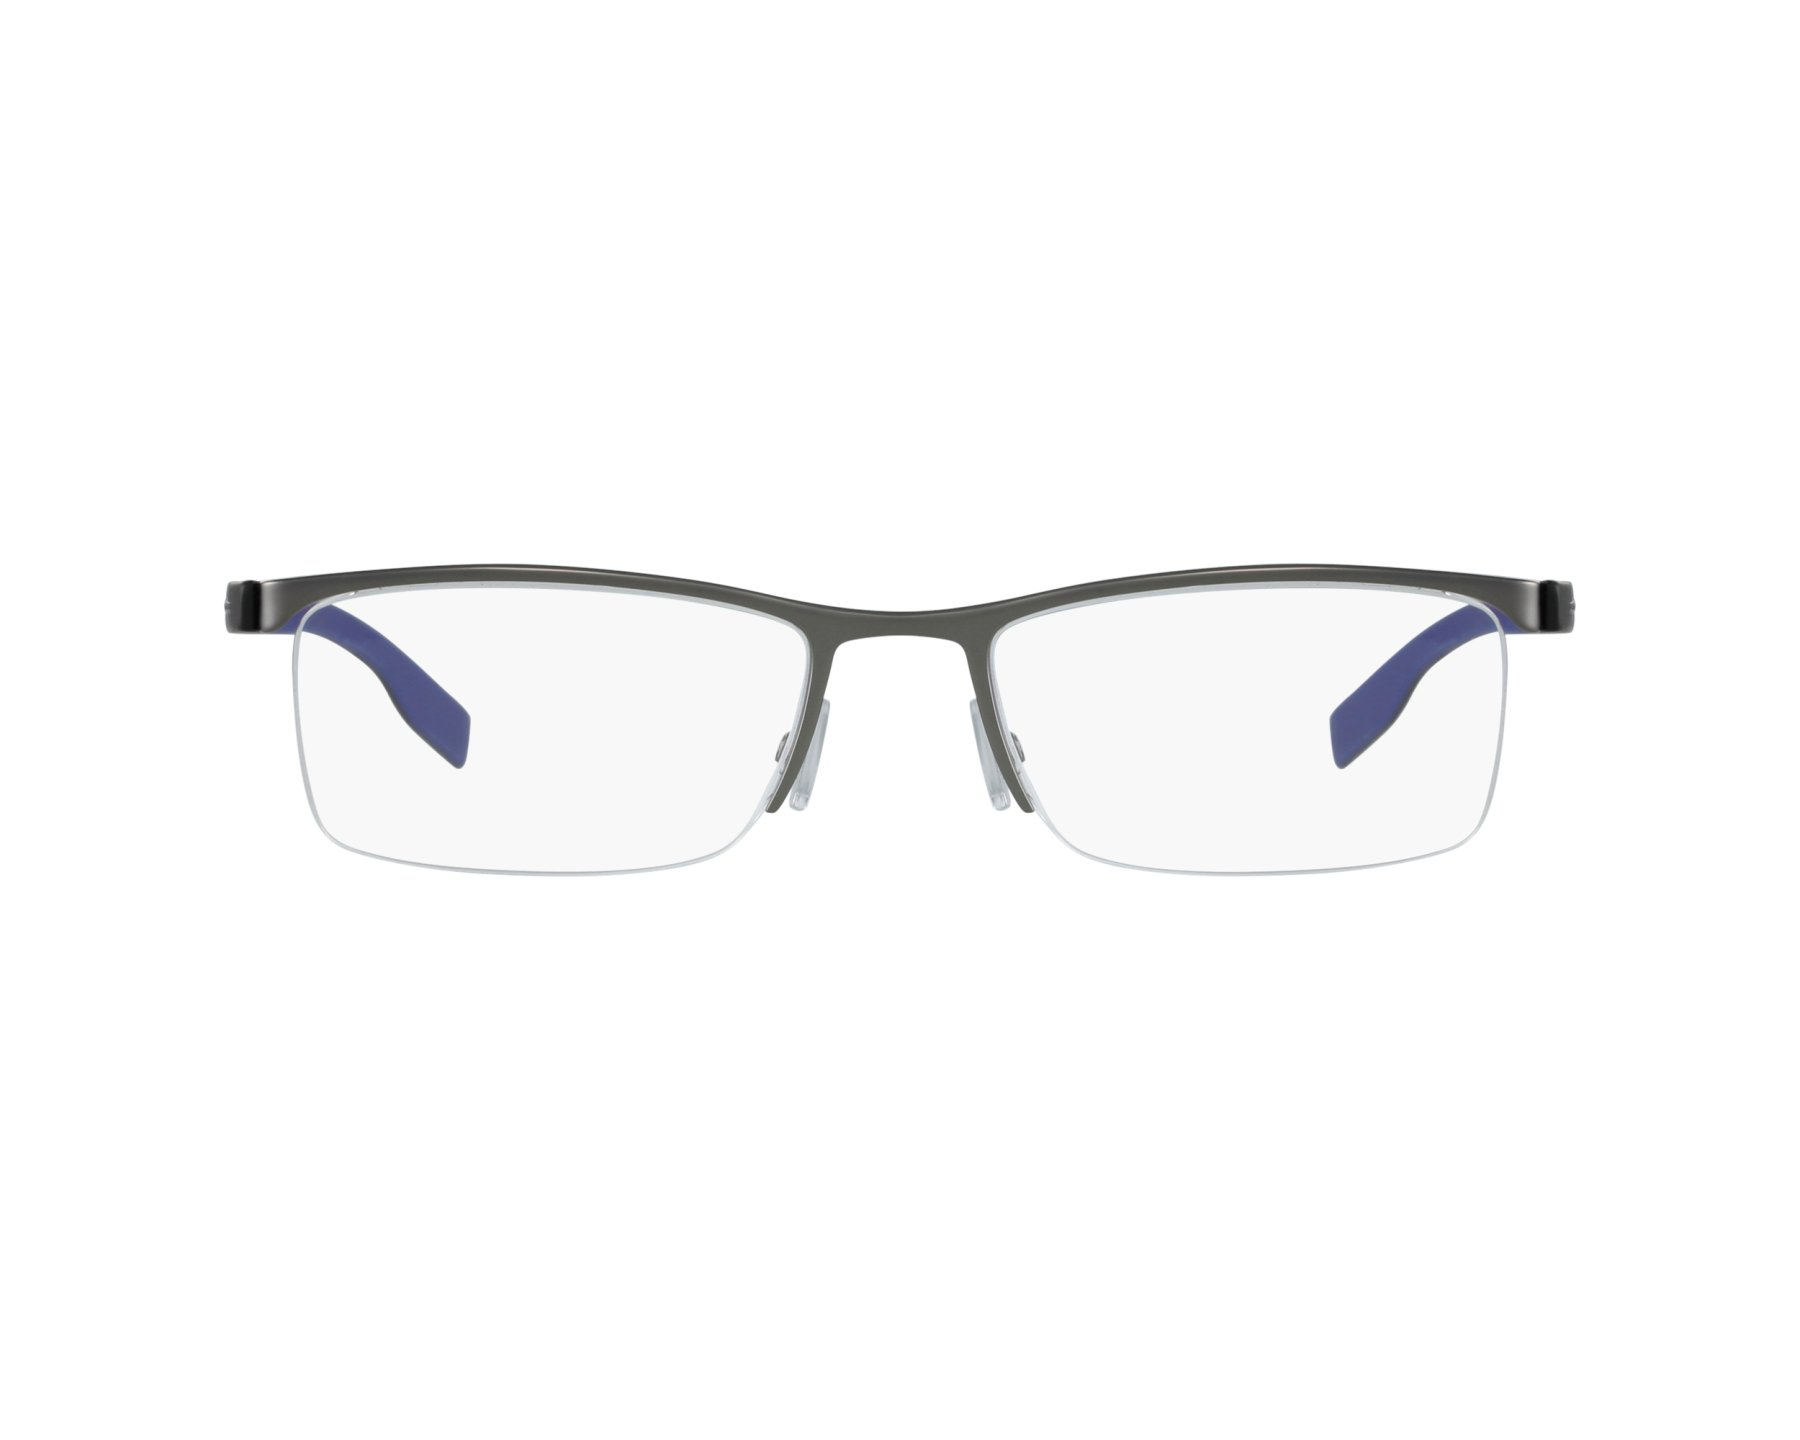 7750251757 eyeglasses Hugo Boss BOSS-0610 5MO 55-19 Silver Black profile view